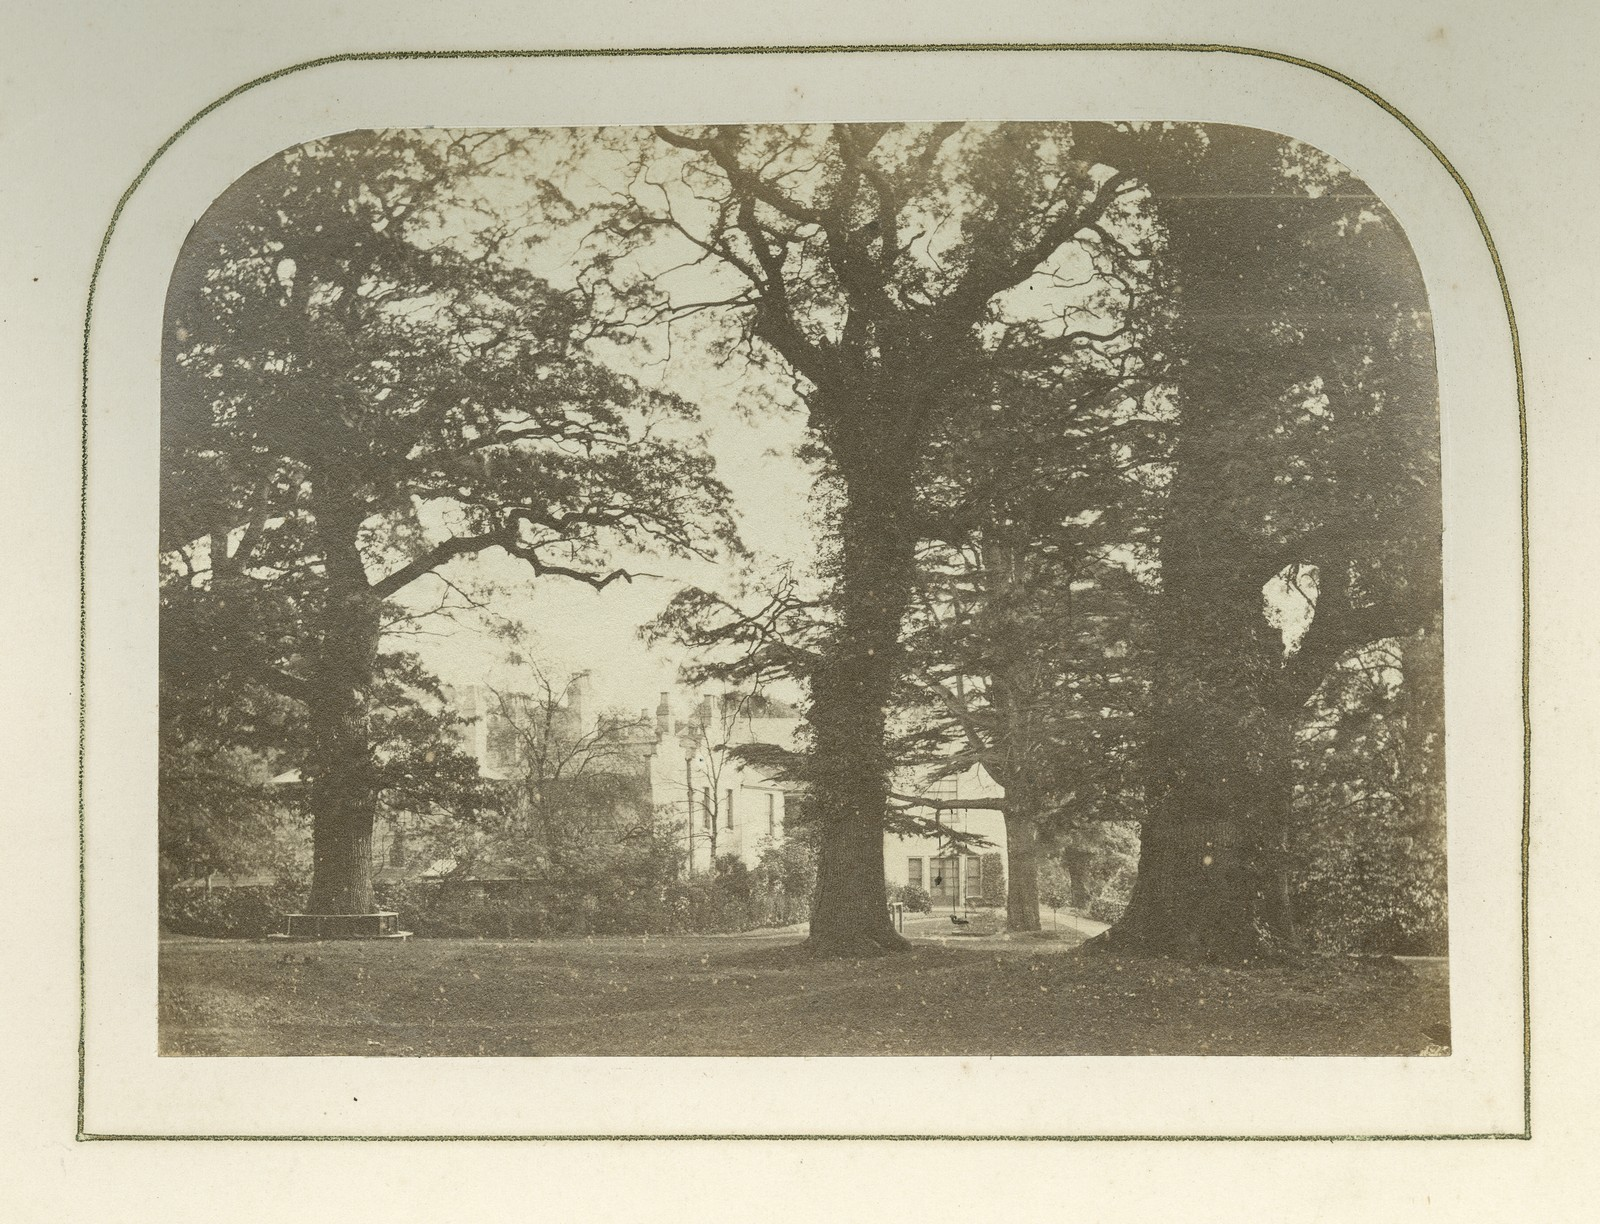 P.L. surrounded by trees, 1864